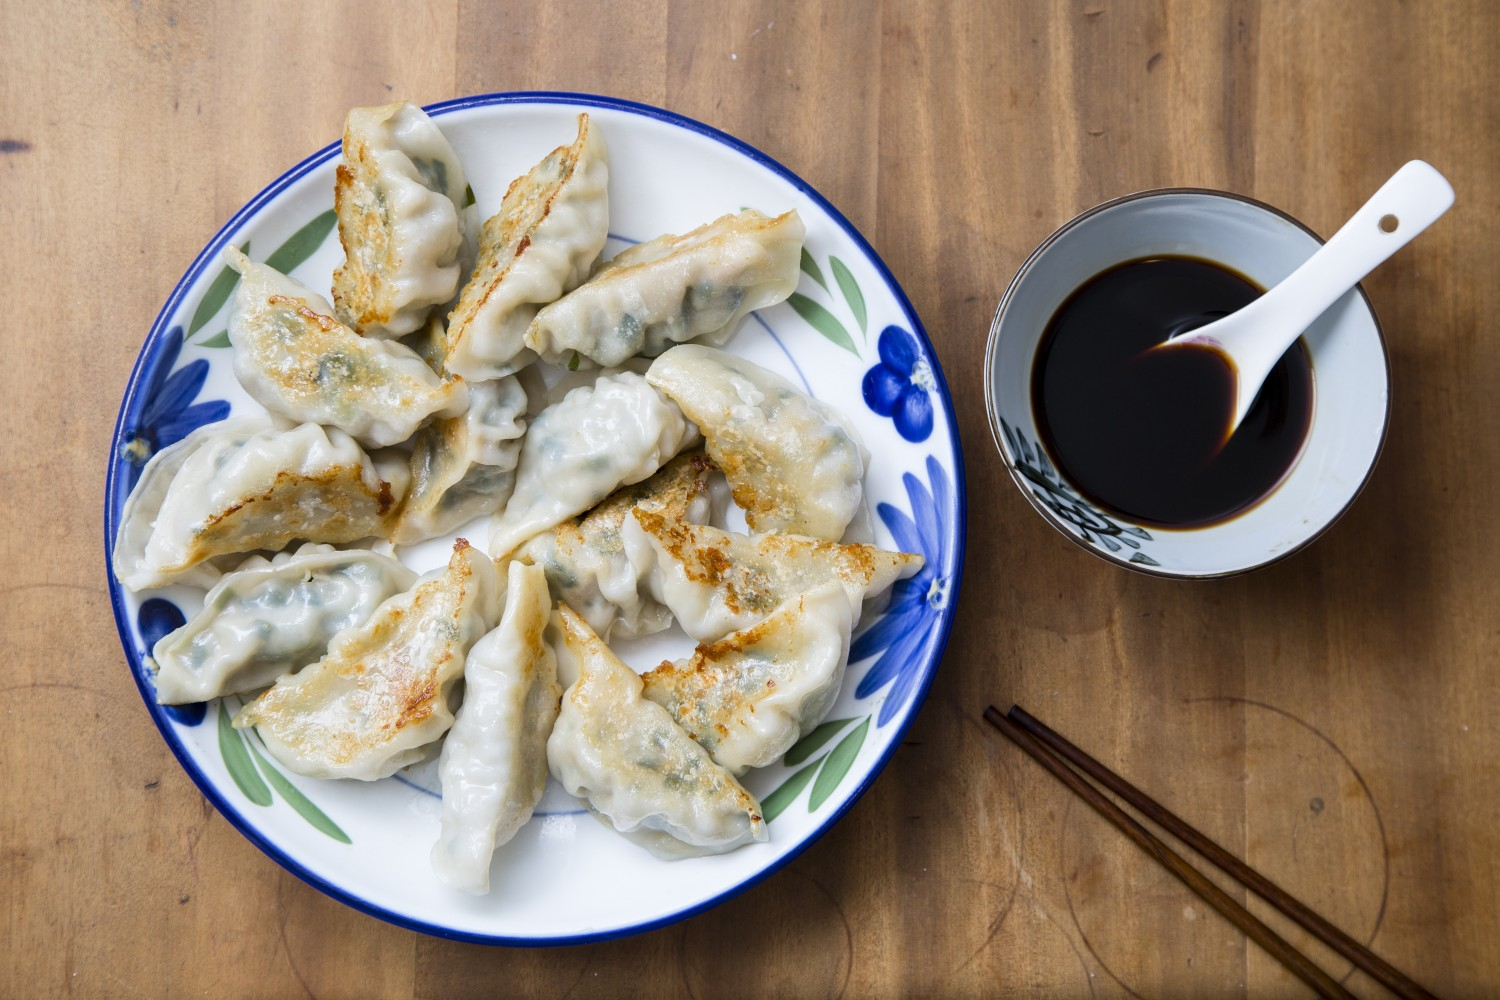 Fry your own dumplings at home—and skip the greasy, restaurant bought ones. (Samira Bouaou/Epoch Times)